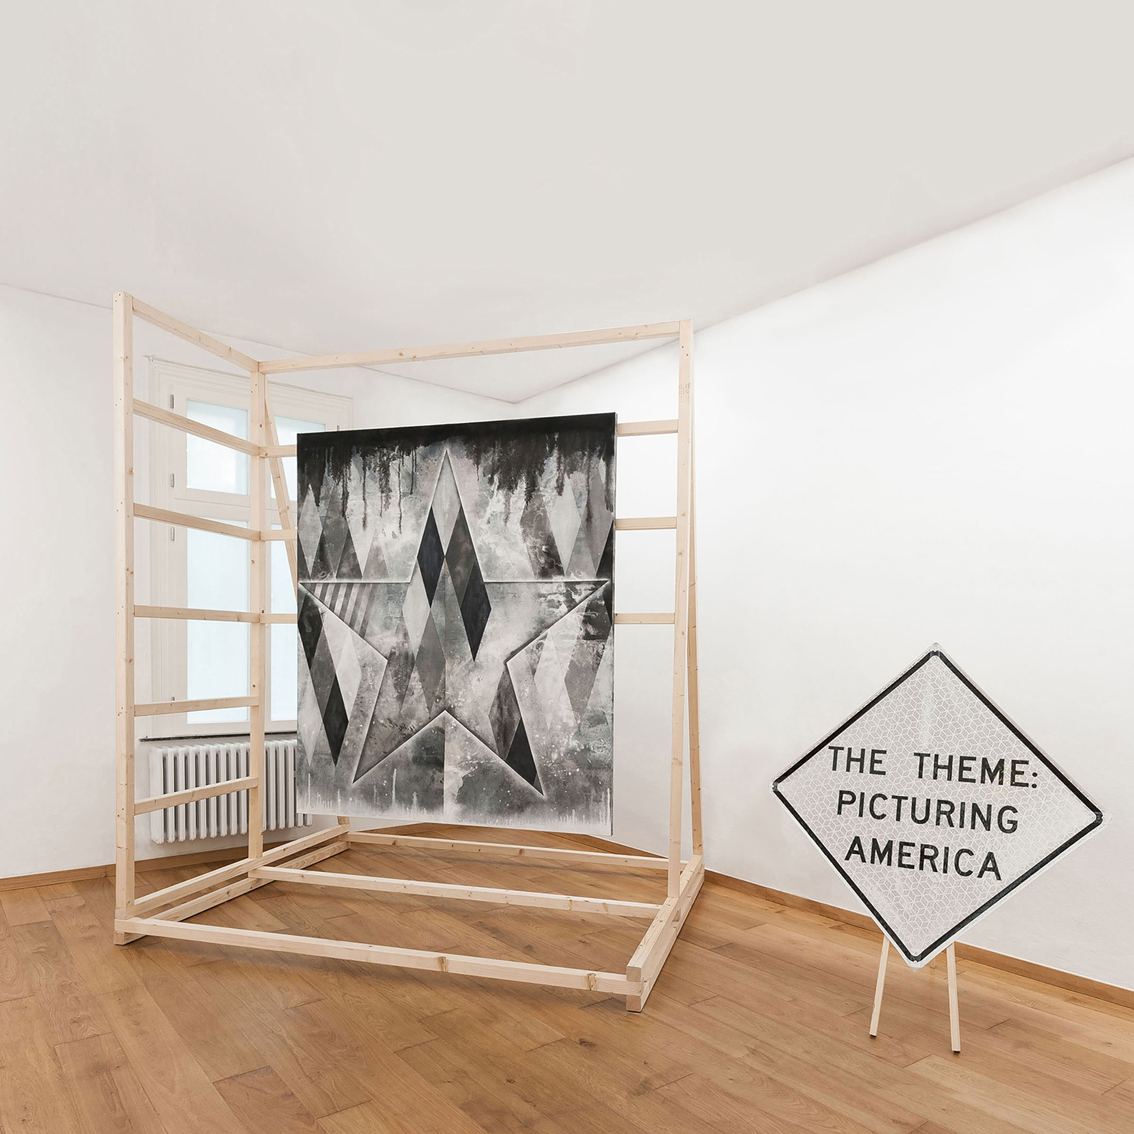 Siri, I told you! 2016 Acrylics on Canvas, Spray Paint, Wooden Construction, Caution Sign 120 x 100 x 80 inches Location: Kunstverein Gelsenkirchen, Gelsenkirchen, Germany